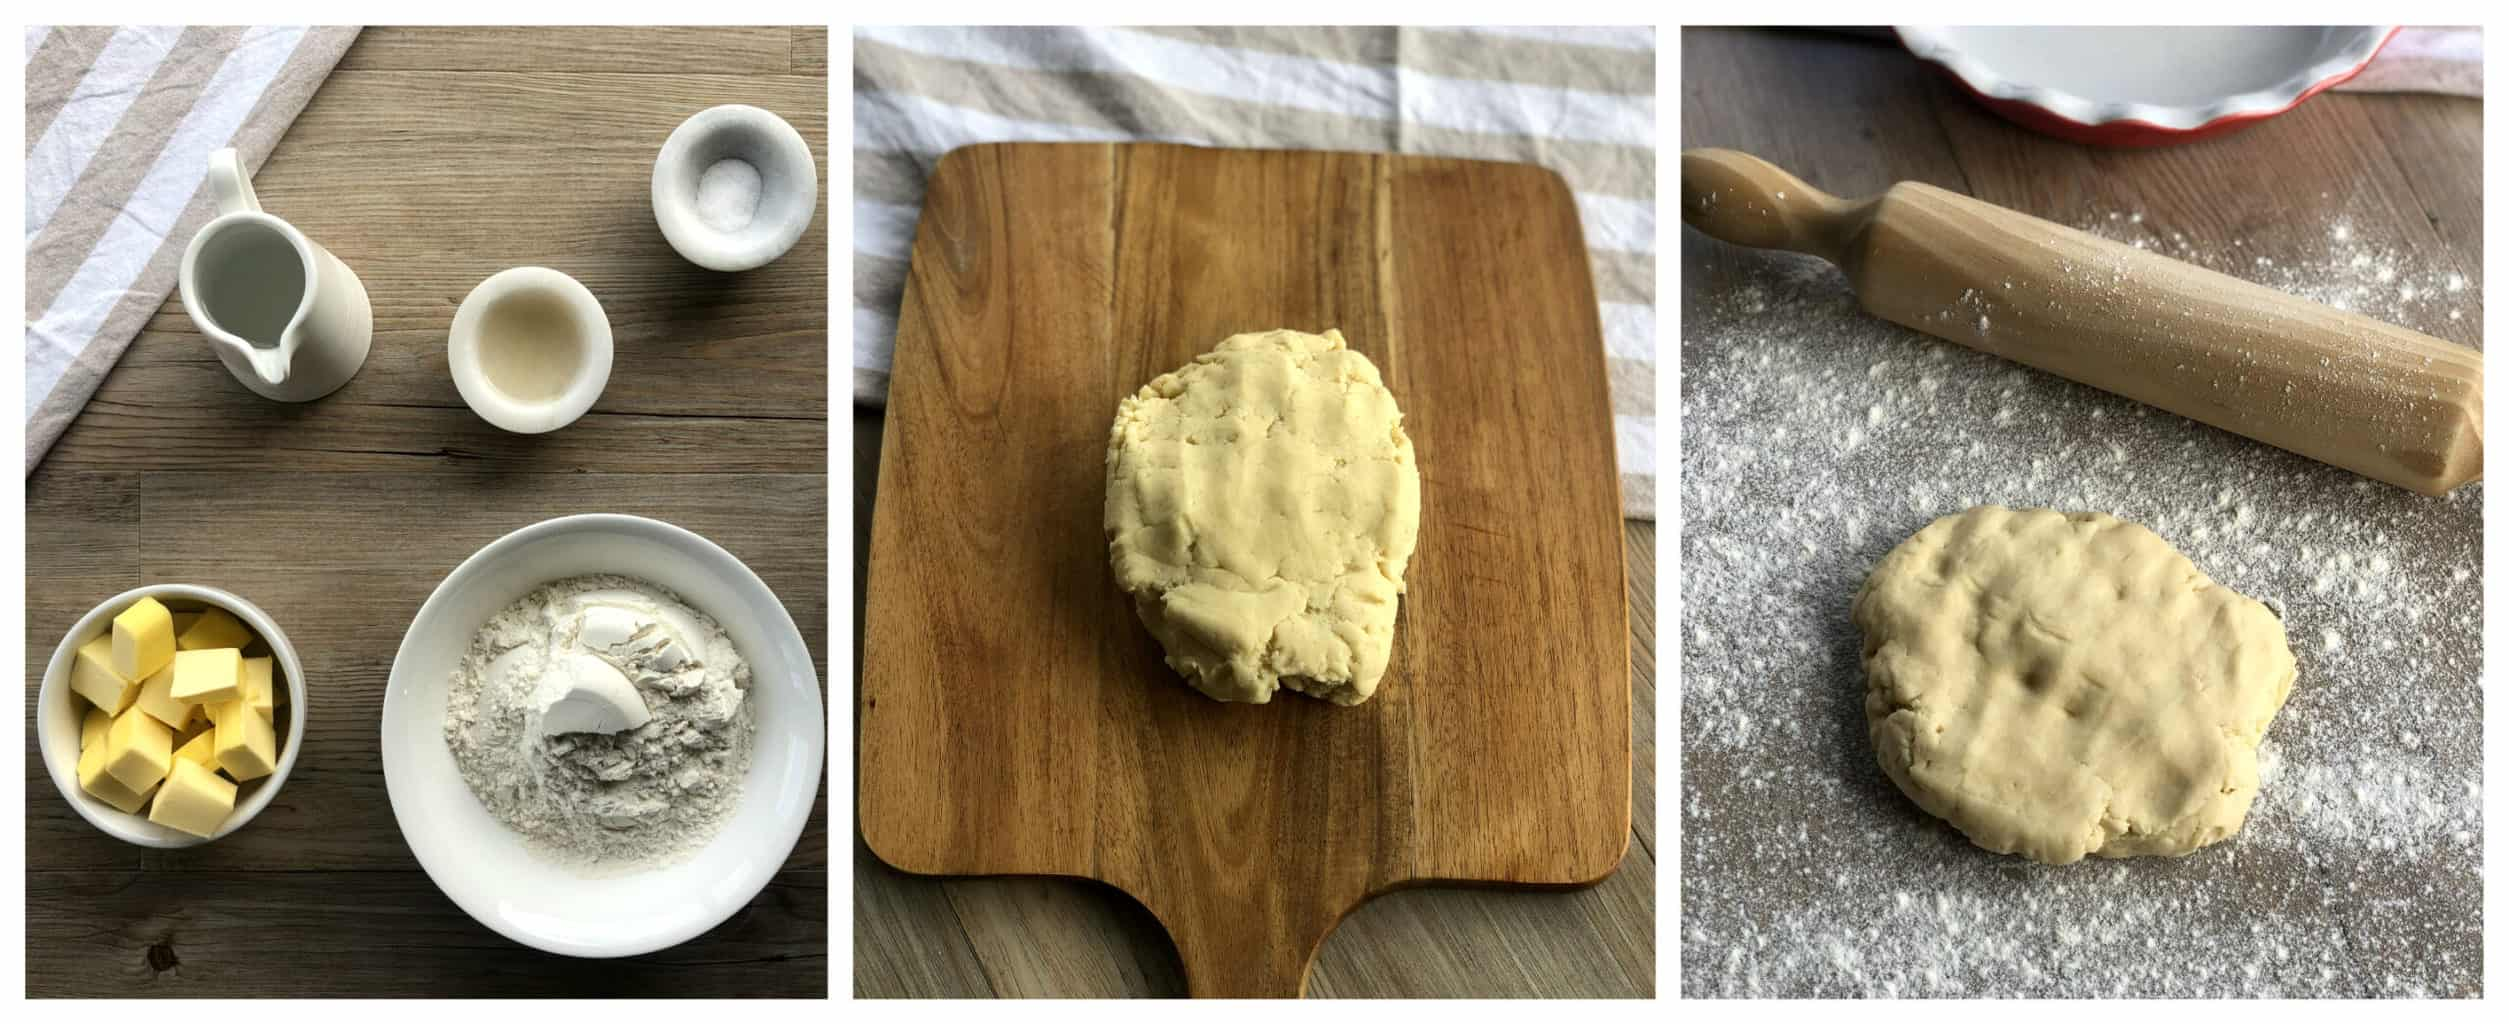 How to Make a Shortcrust Pastry - Buttery Crispy